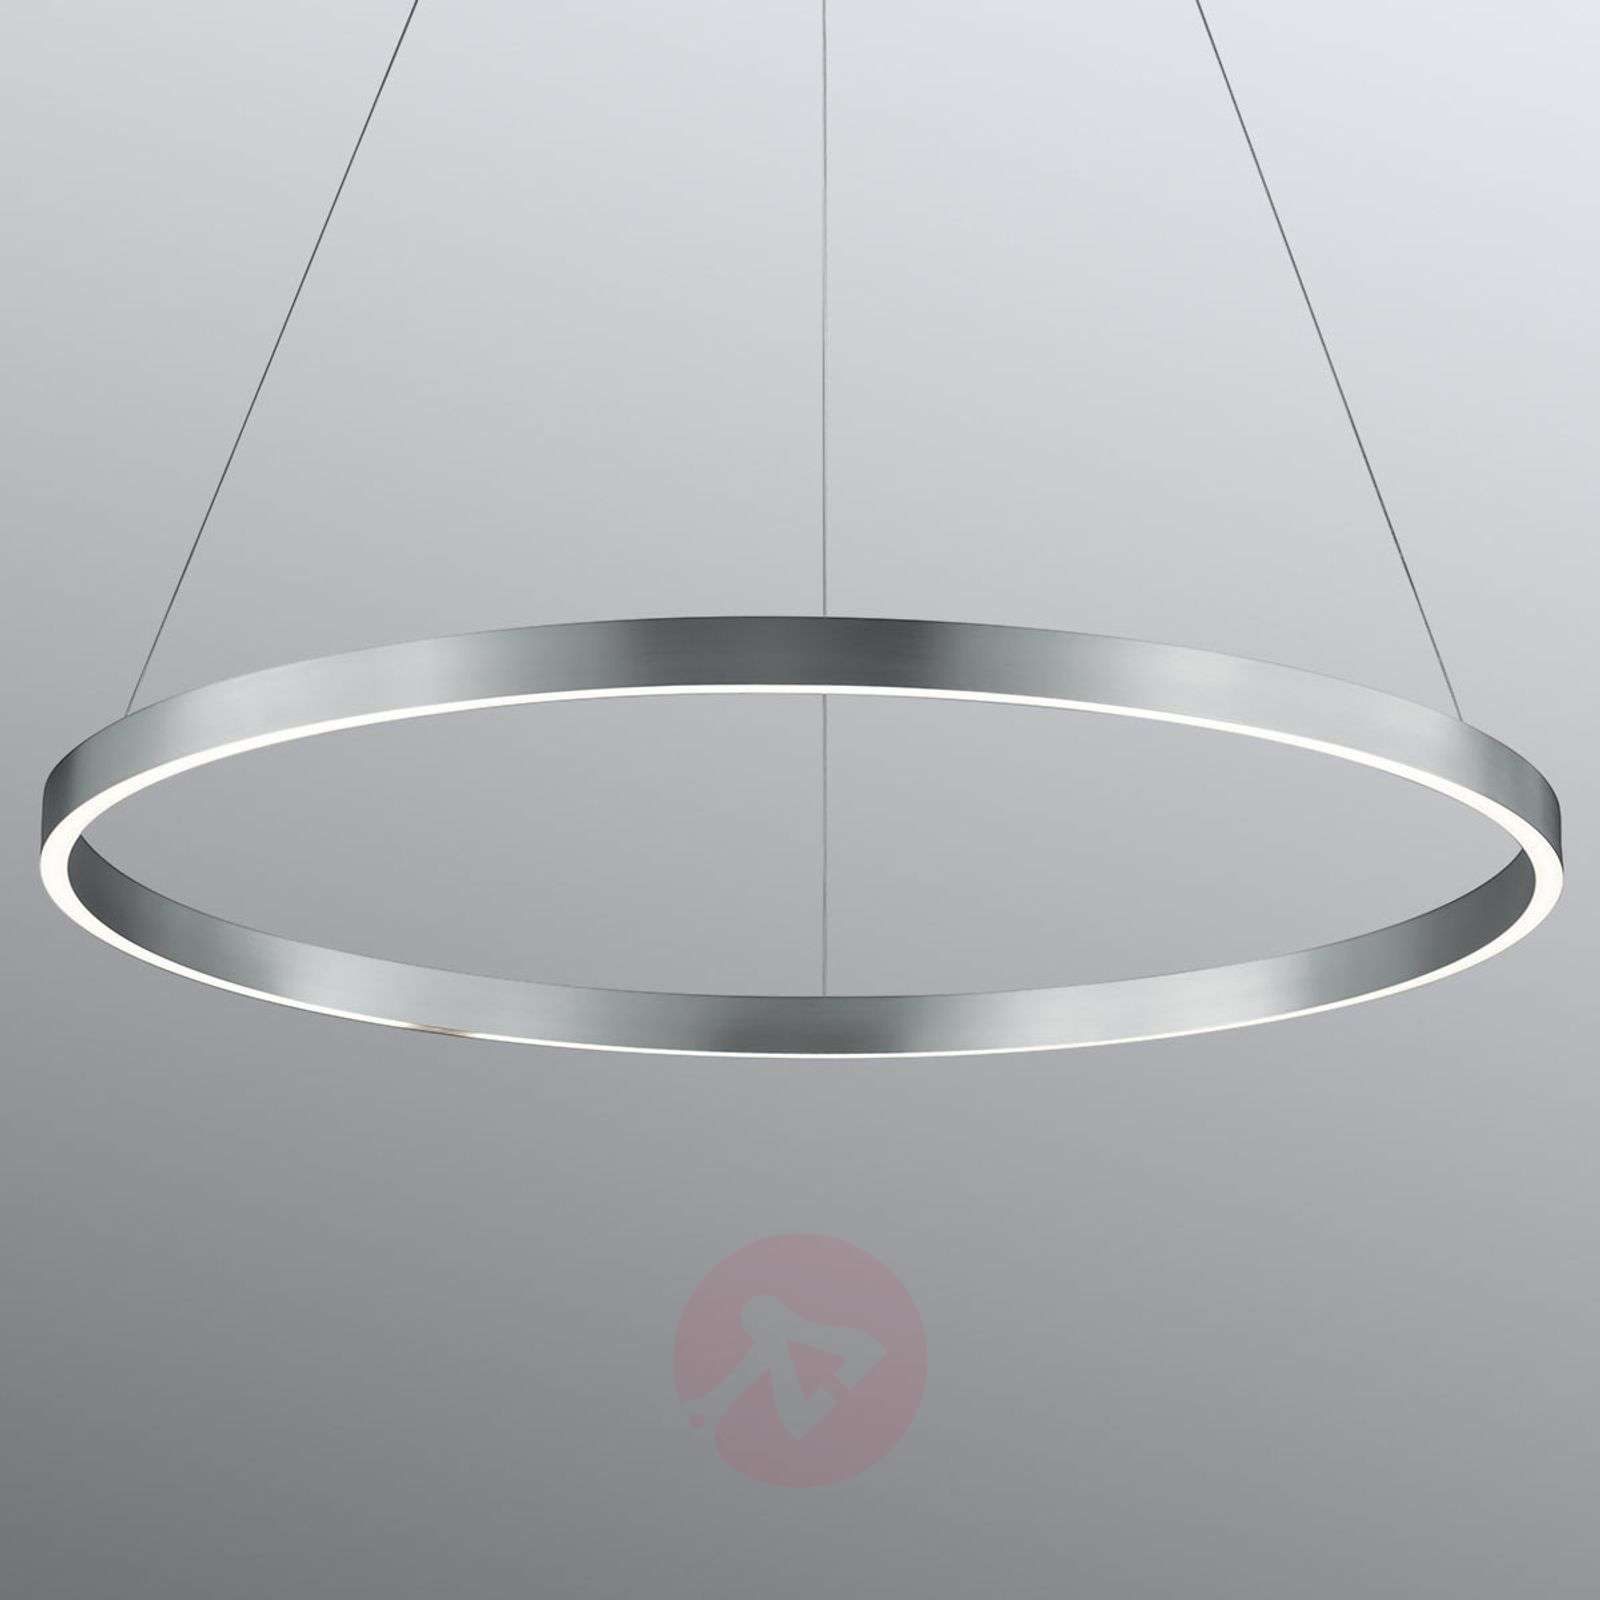 Circle Led Hanging Light With Gesture Control Lights Ie